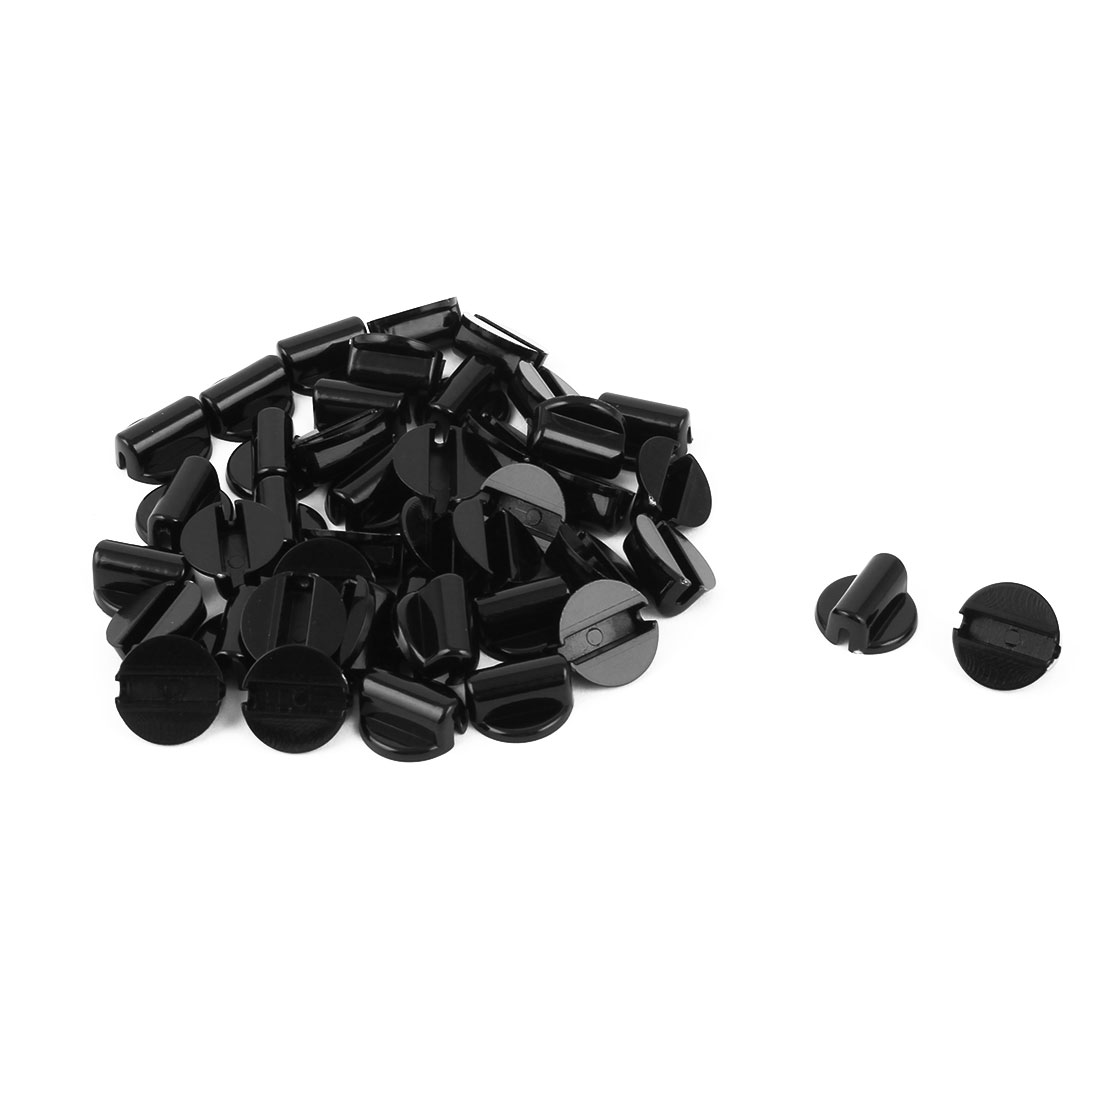 Woman Plastic DIY Ponytail Holder Hairstyle Hair Rope Band Buckle Black 40pcs